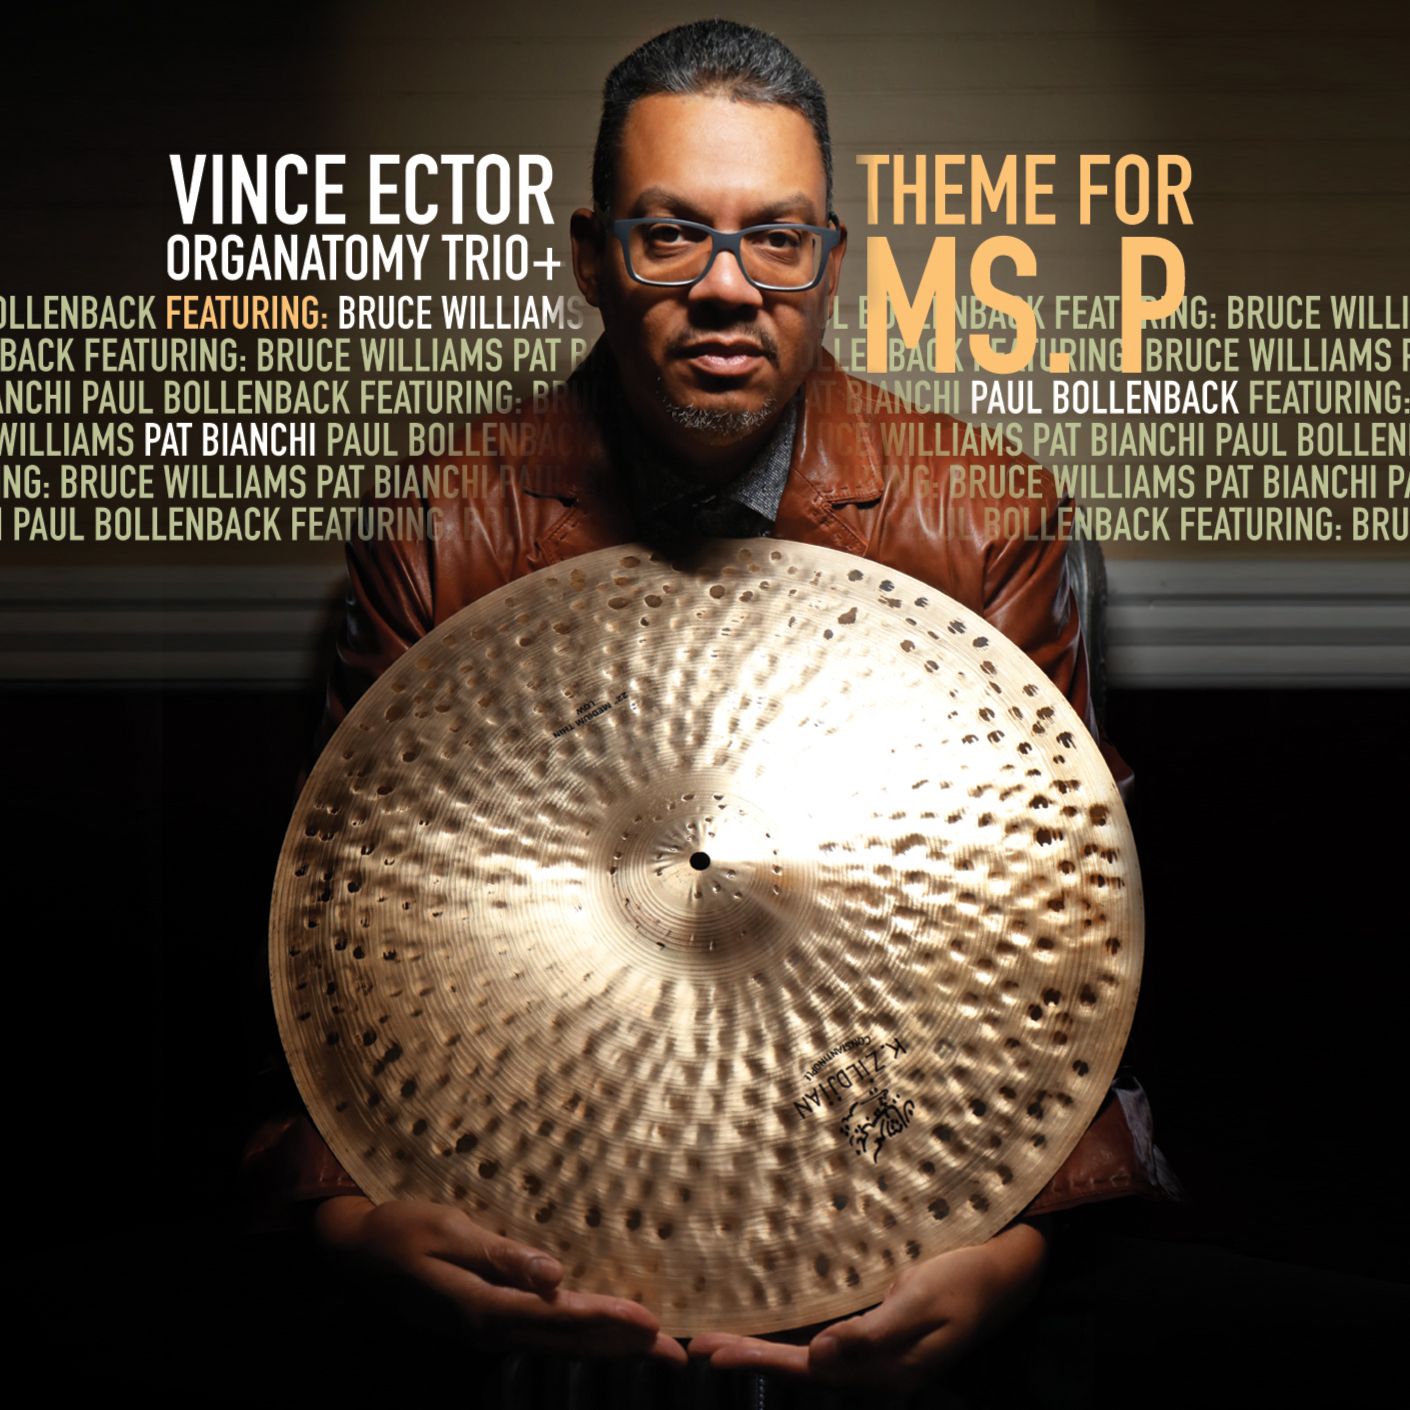 OUT NOW: Drummer, Educator and Jazz Advocate Vince Ector Celebrates New Release 'Theme for Ms. P'